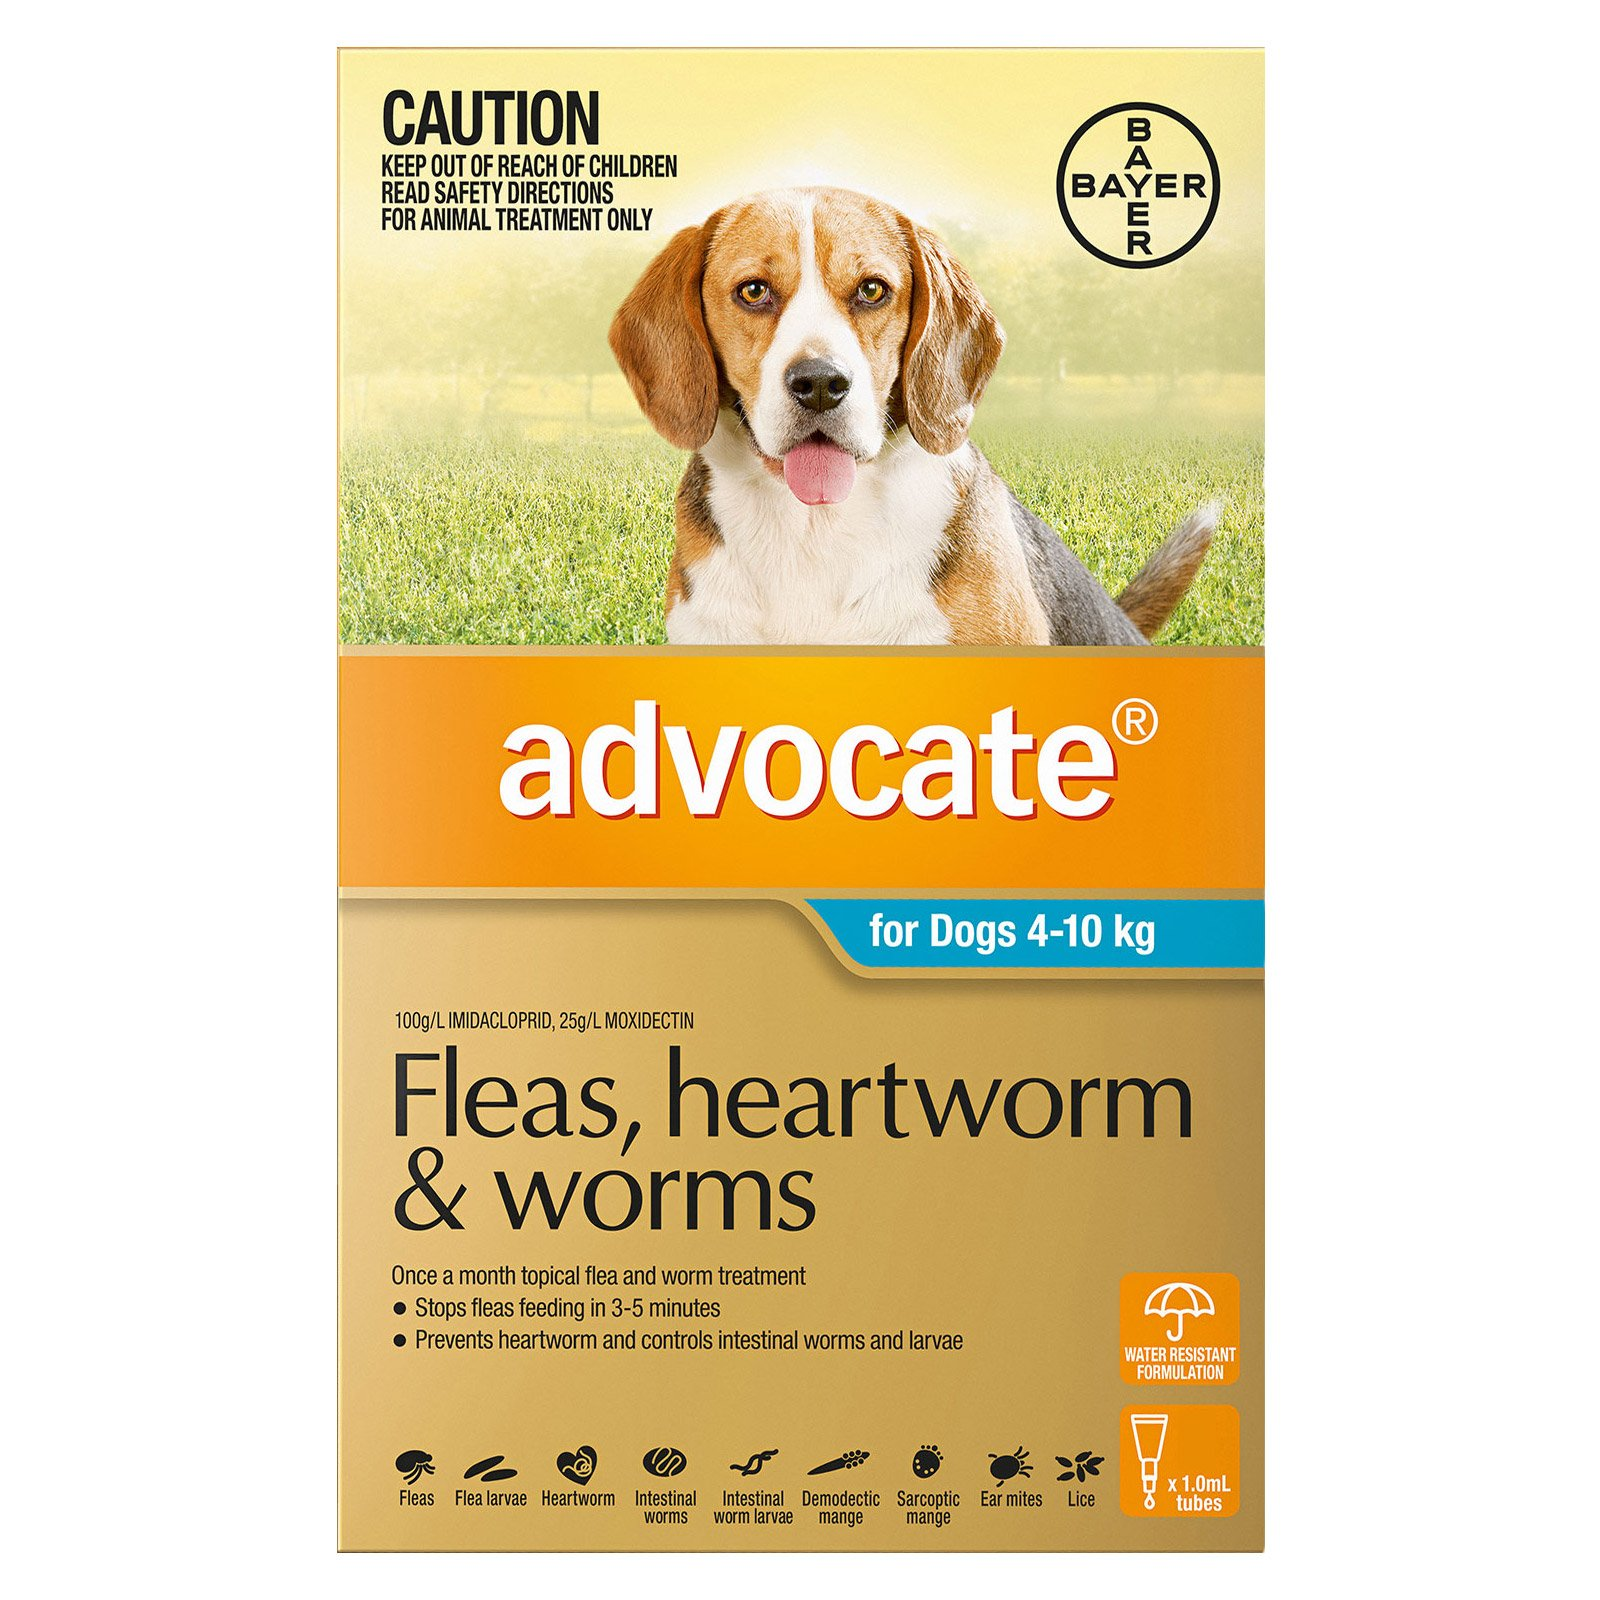 advocate-for-medium-dogs-4-to-10kg-aqua-1.jpg